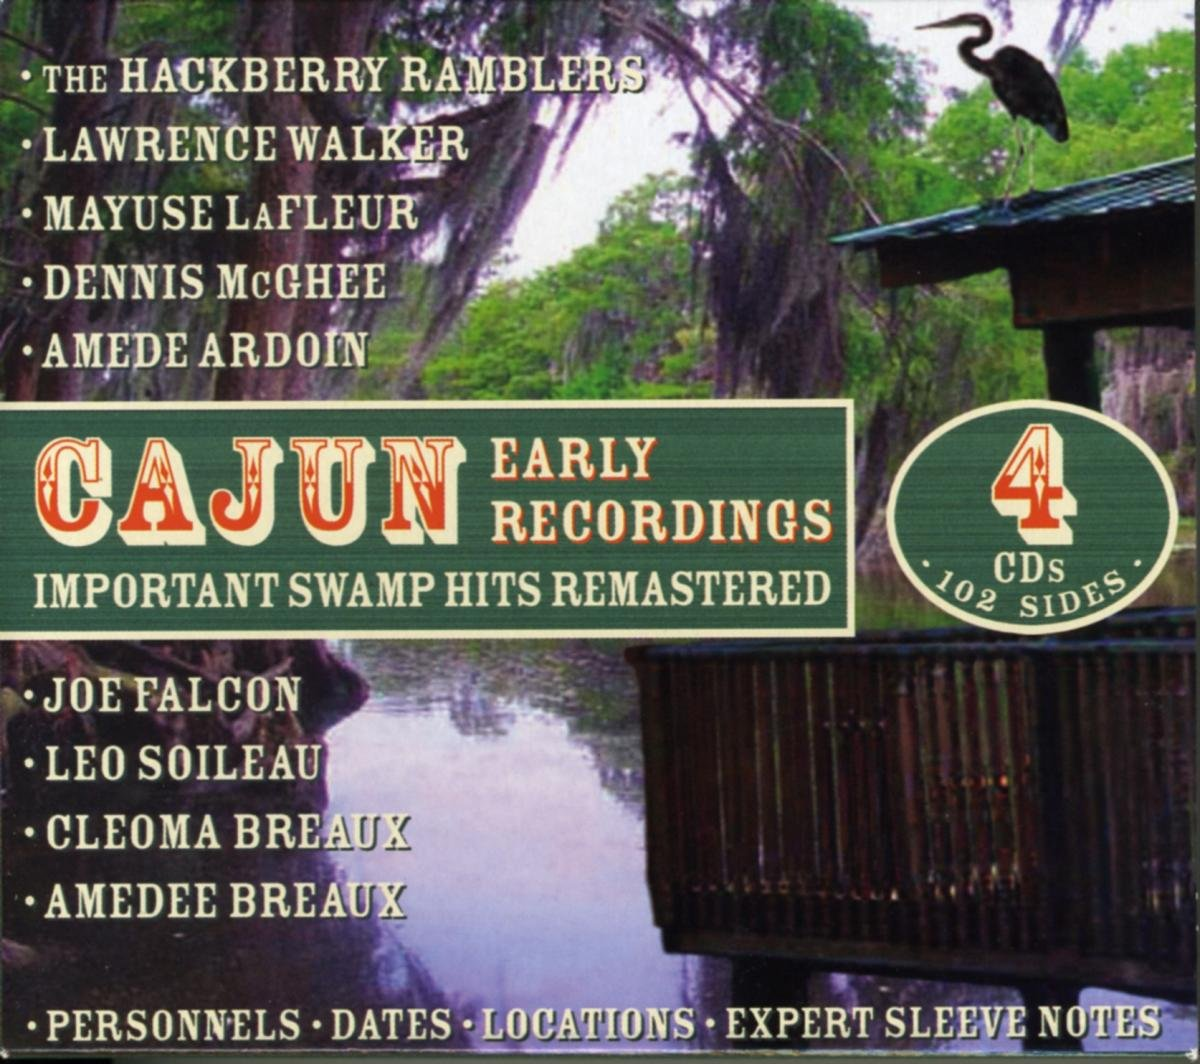 Cajun Early Recordings by Jsp Records